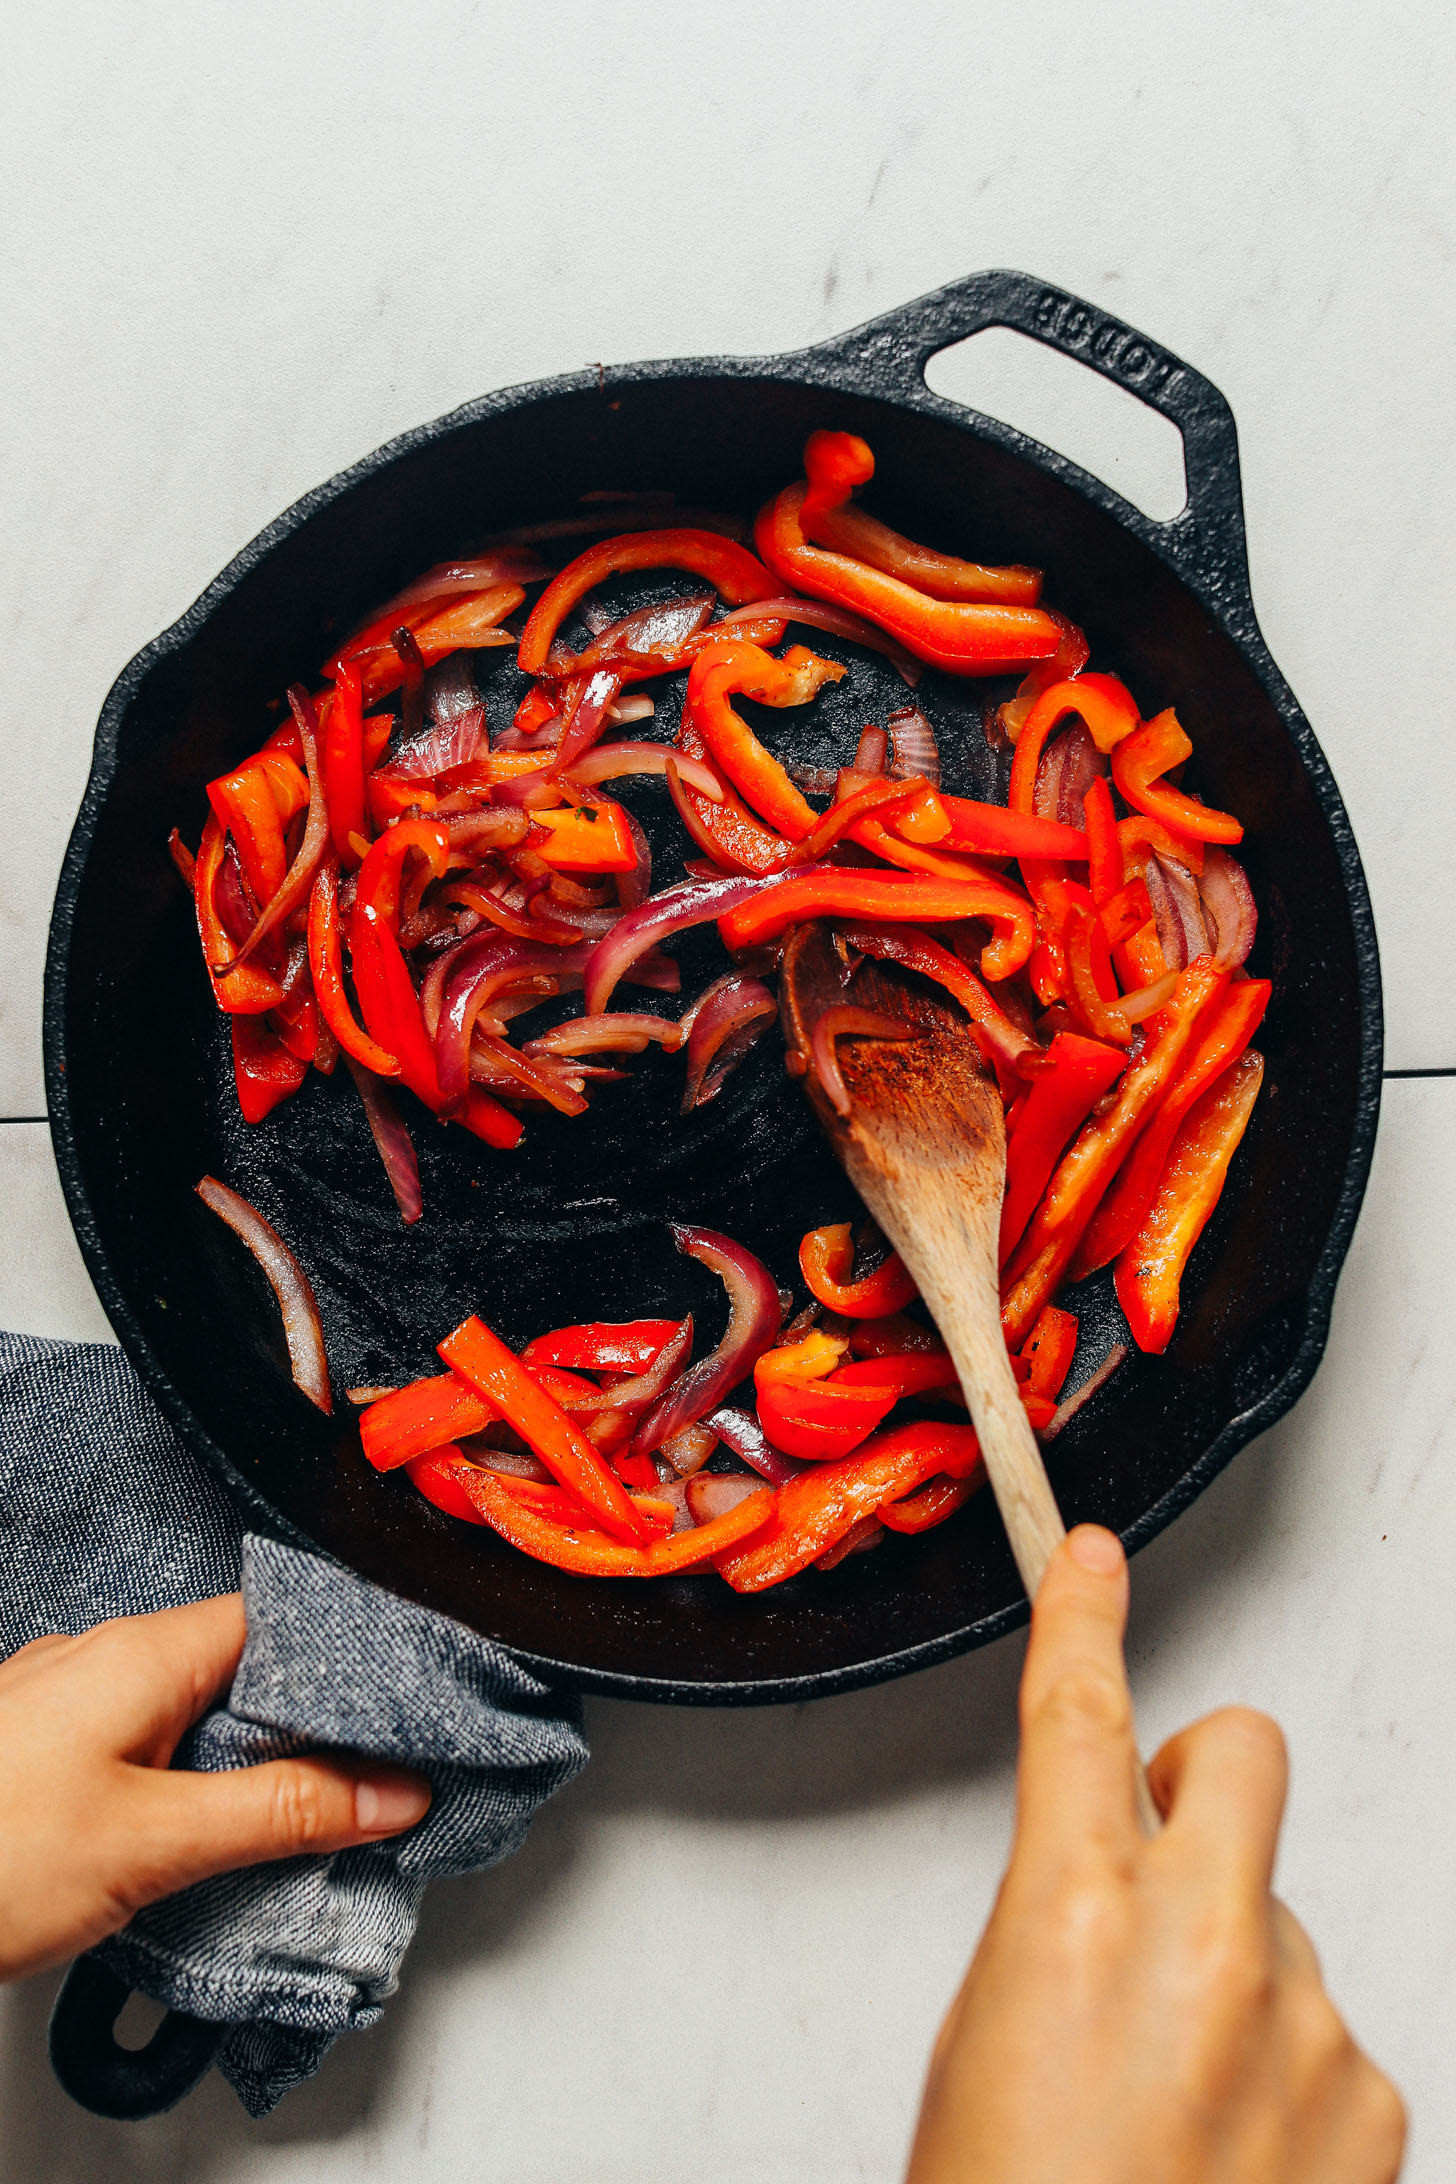 Sautéing peppers and onions for our Grain-Free Burrito Bowls recipe